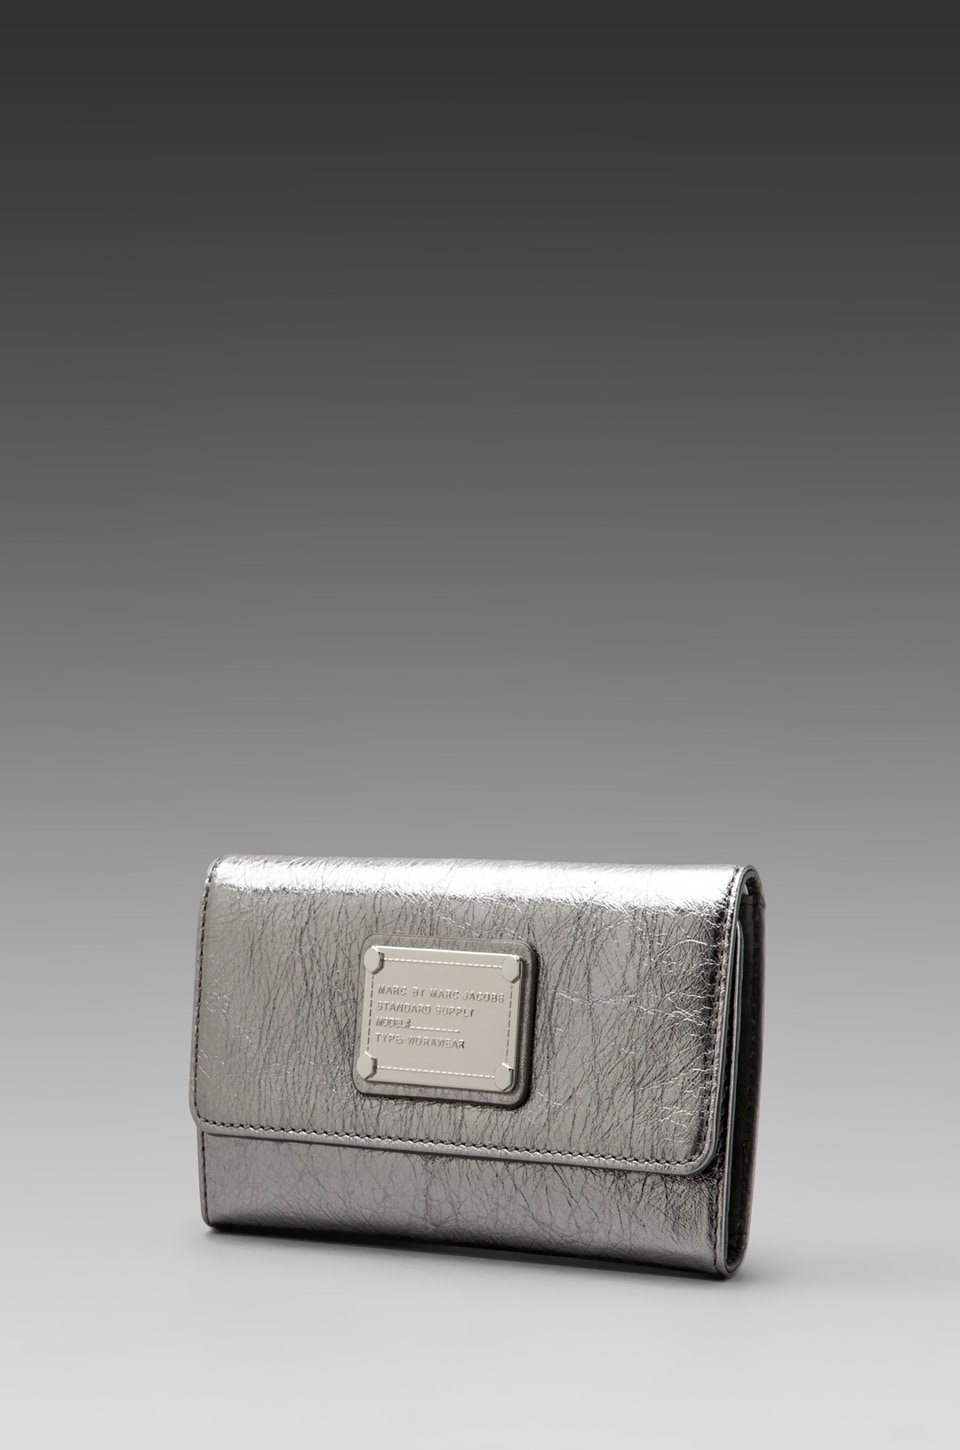 Marc by Marc Jacobs Classic Q Long Trifold in Shiny Gunmetal